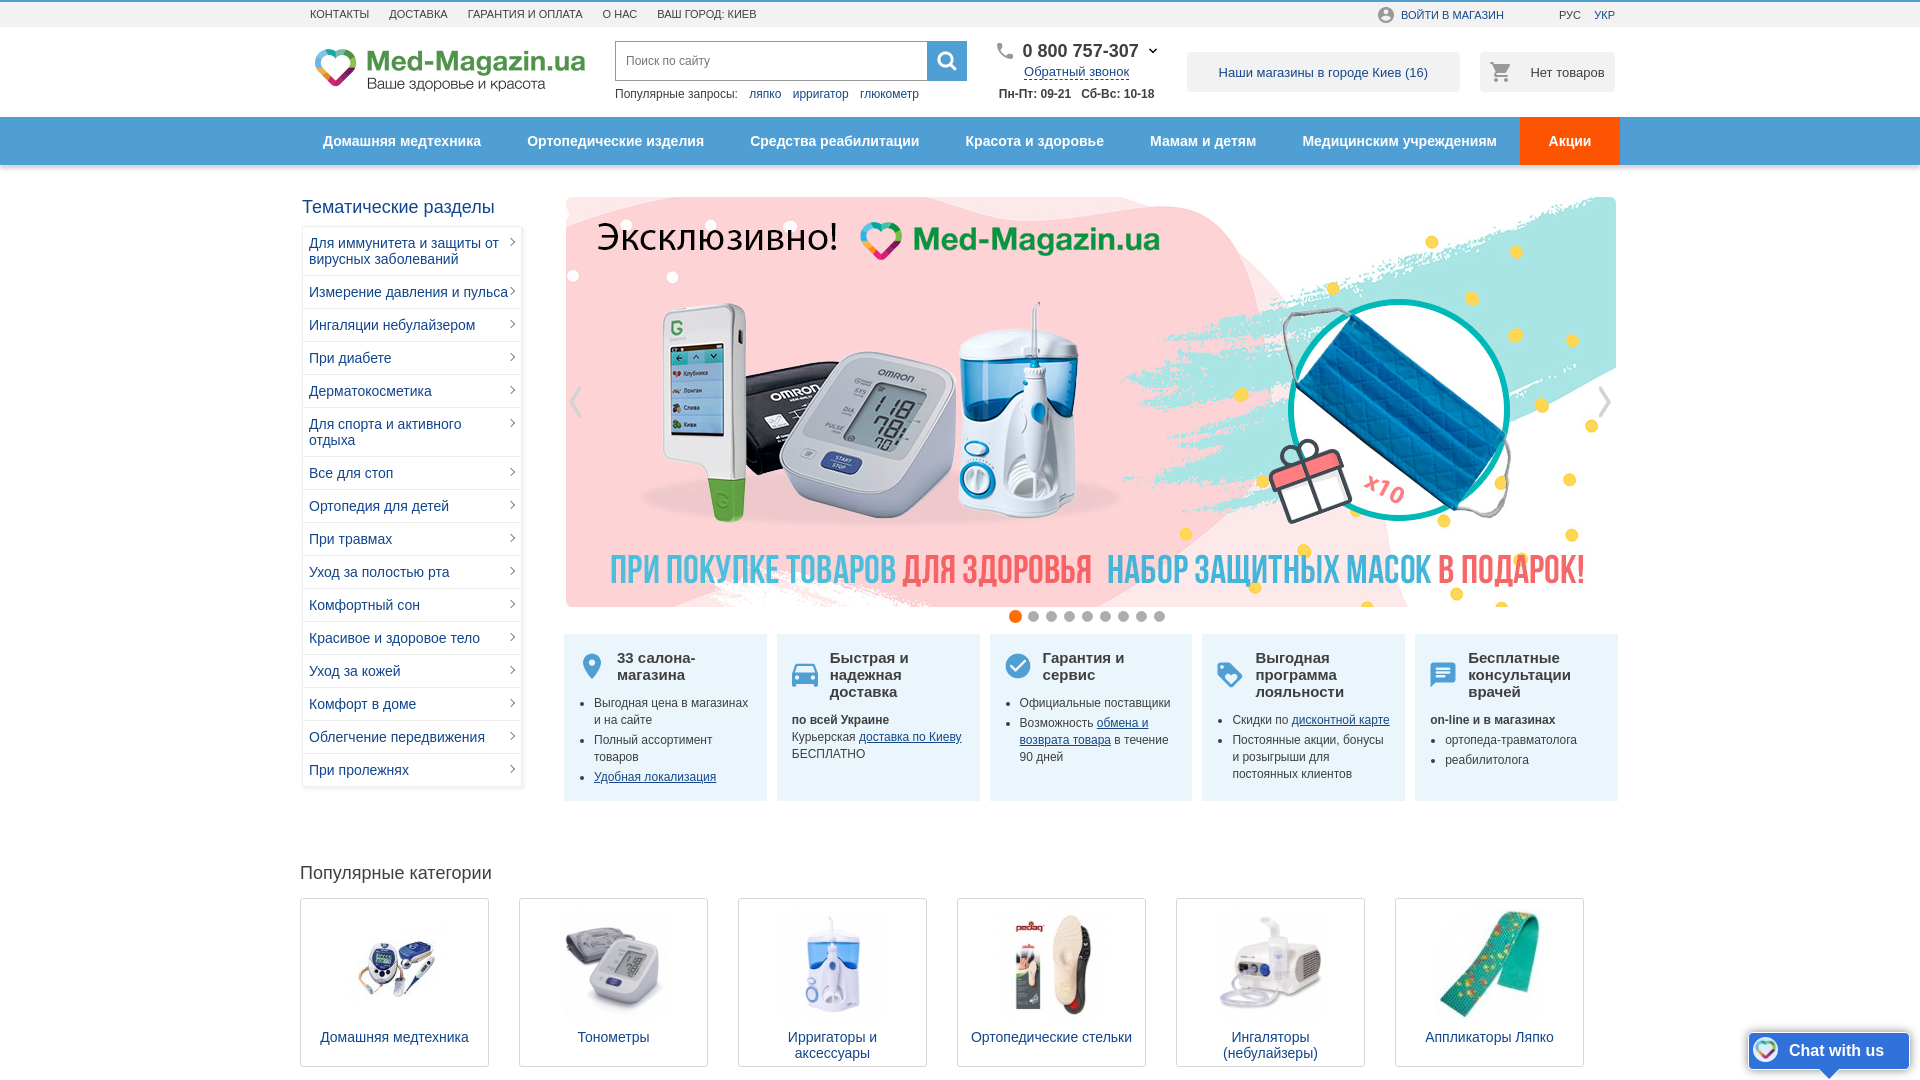 Medmagazin UA website